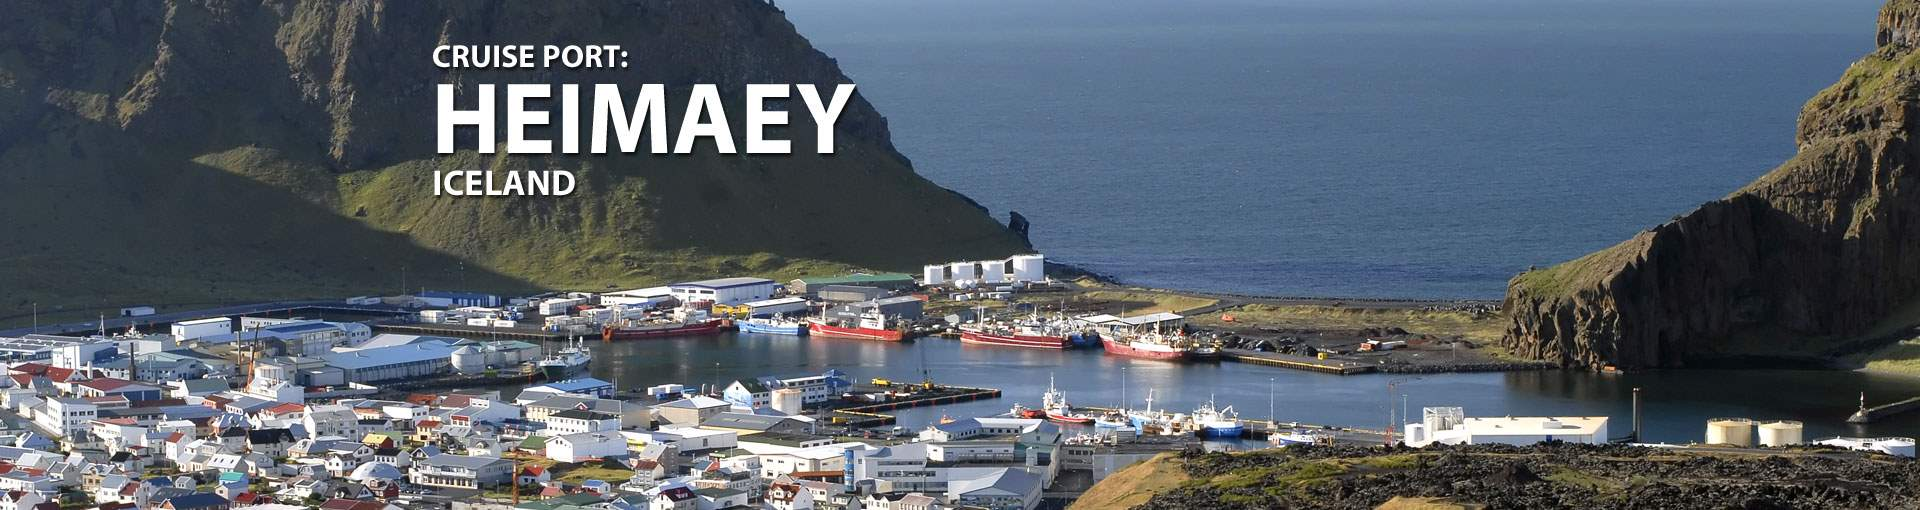 Cruises to Heimaey, Iceland